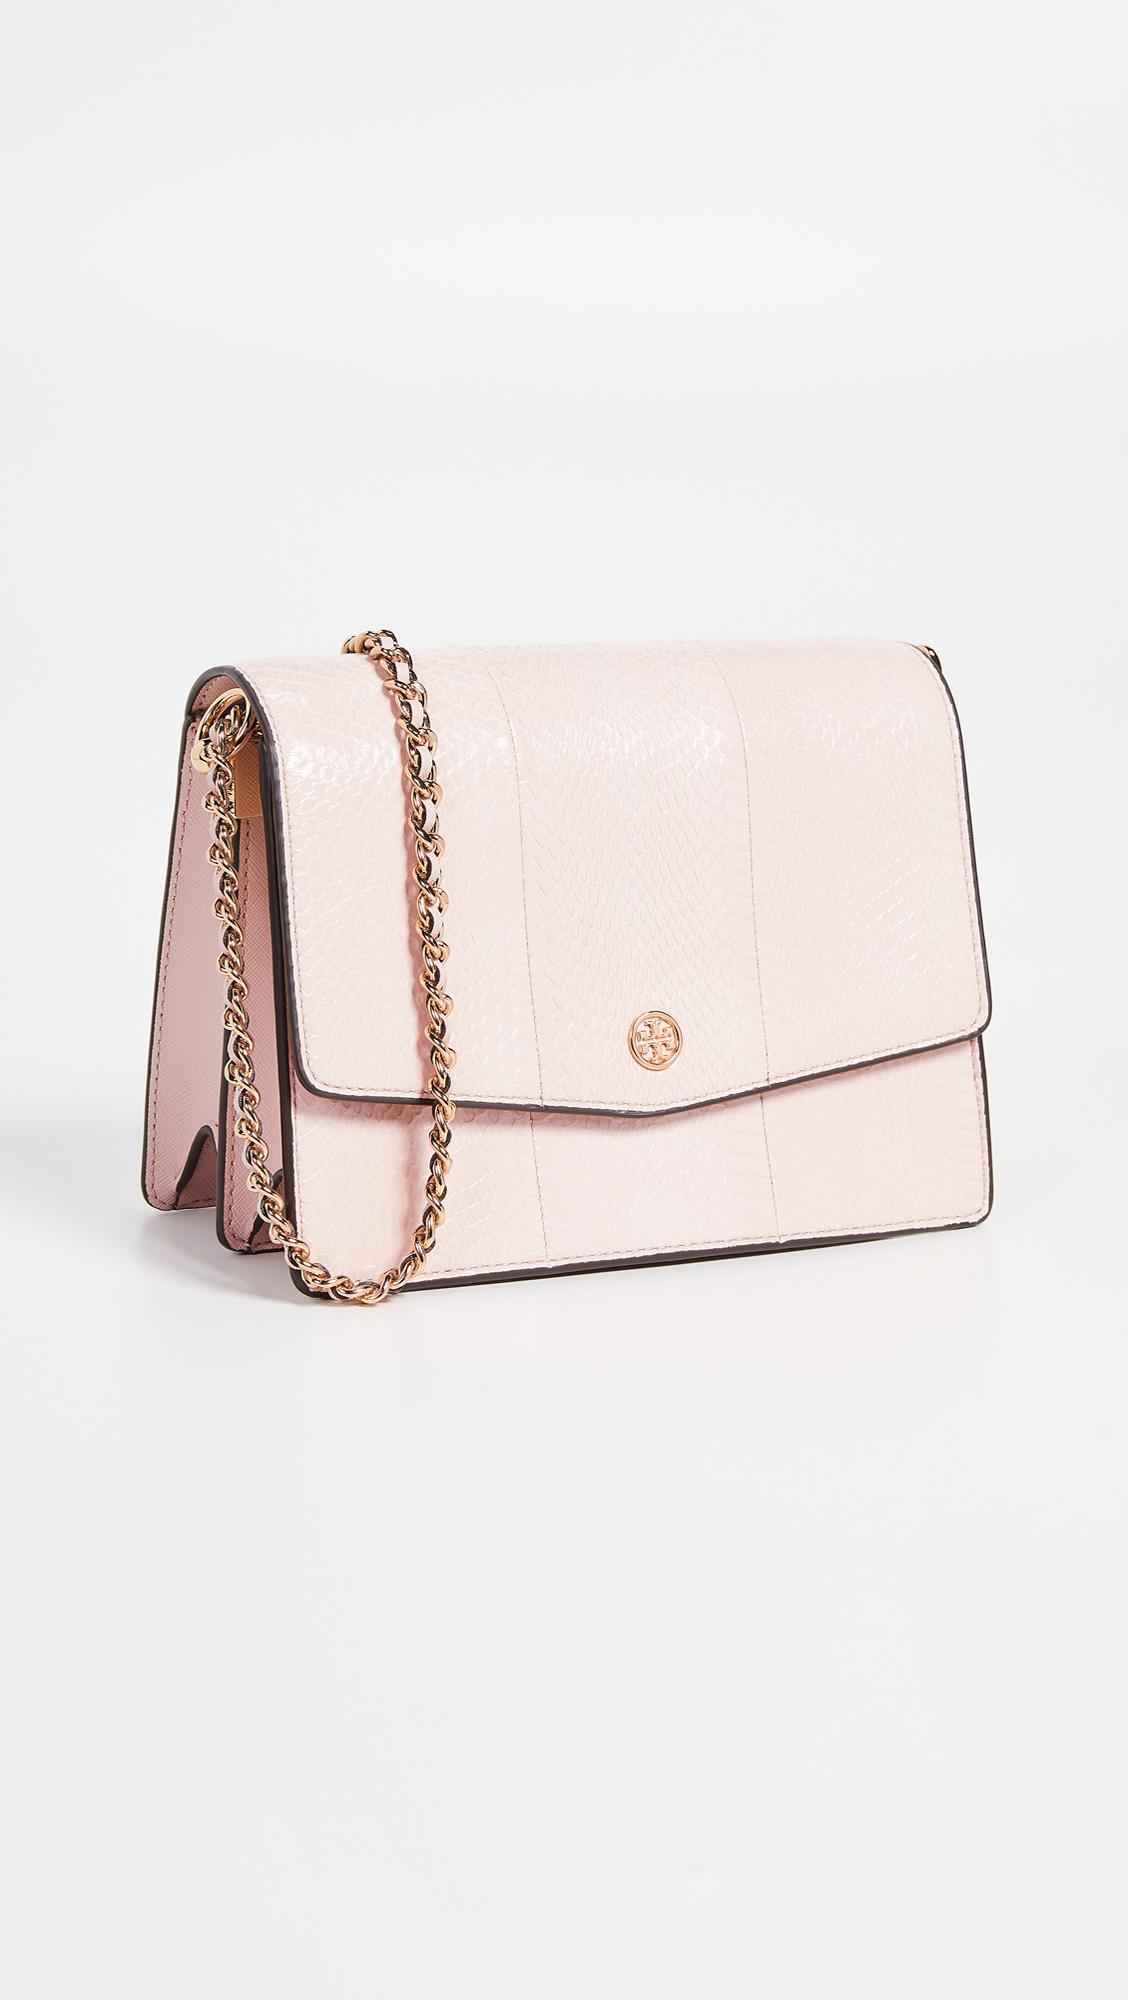 252166ccdfd6 Lyst - Tory Burch Robinson Exotic Convertible Shoulder Bag in Pink